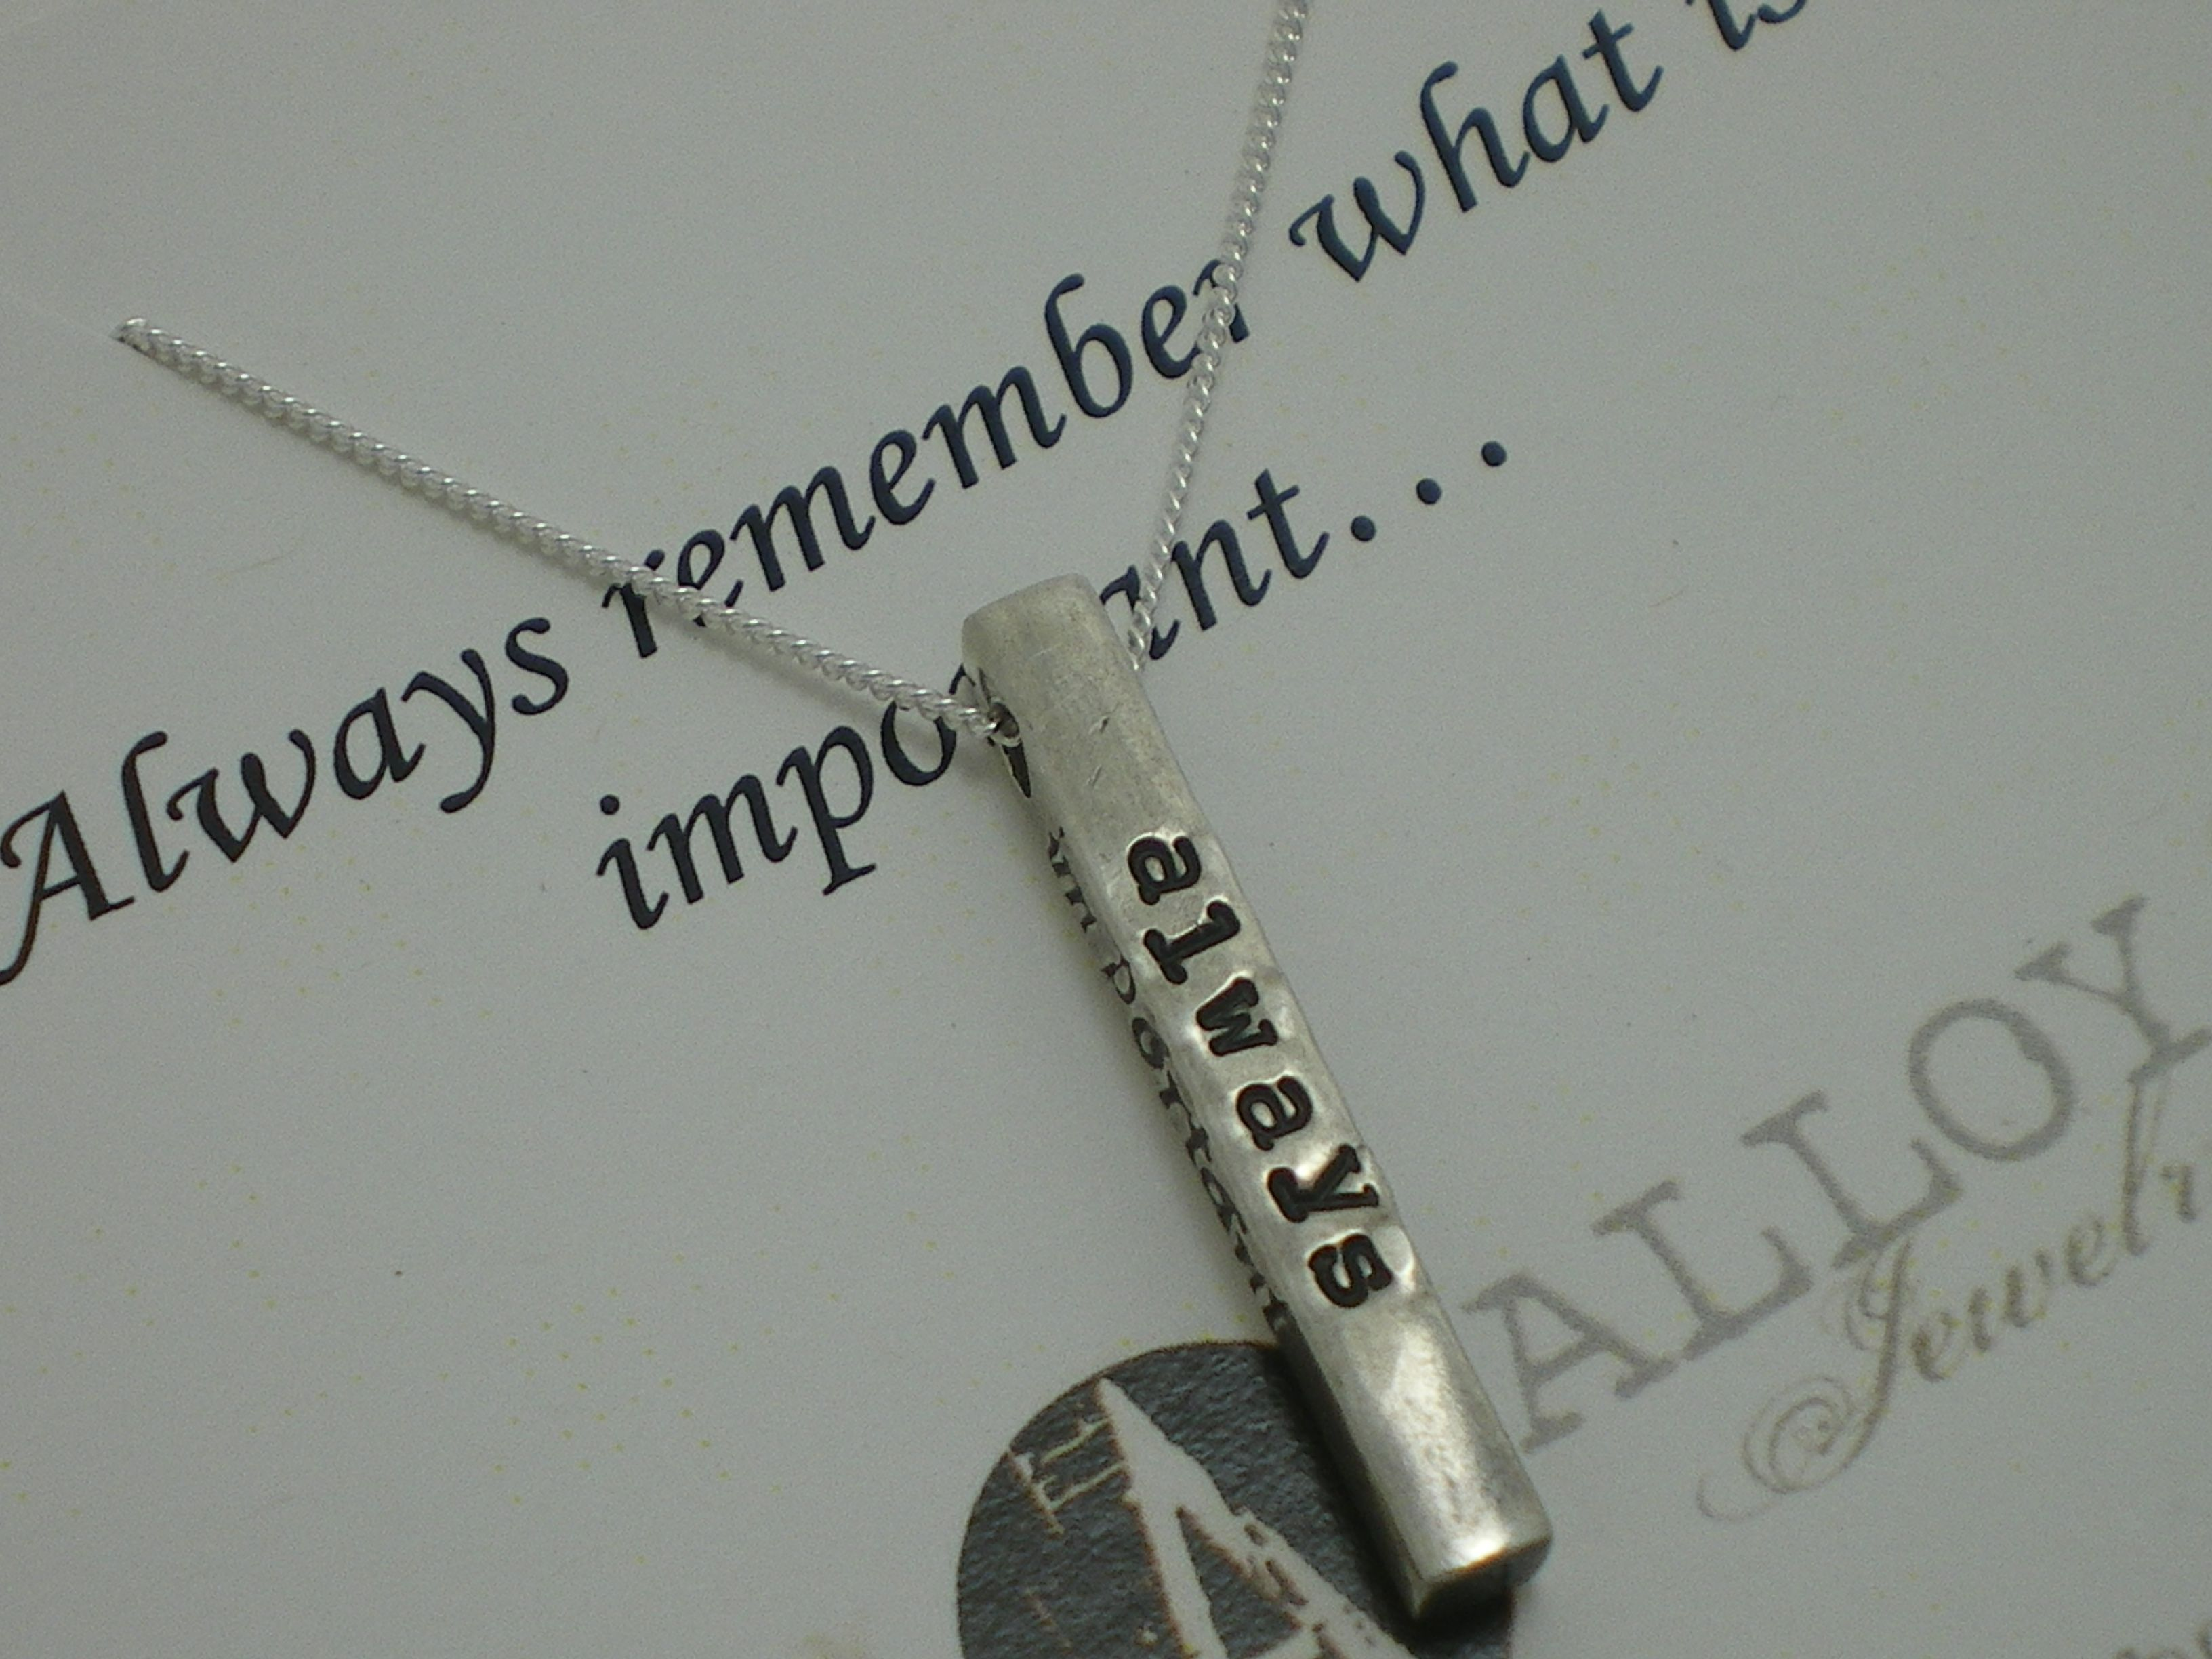 Always remember what is important quote necklace  www.shopalloyjewelry.com